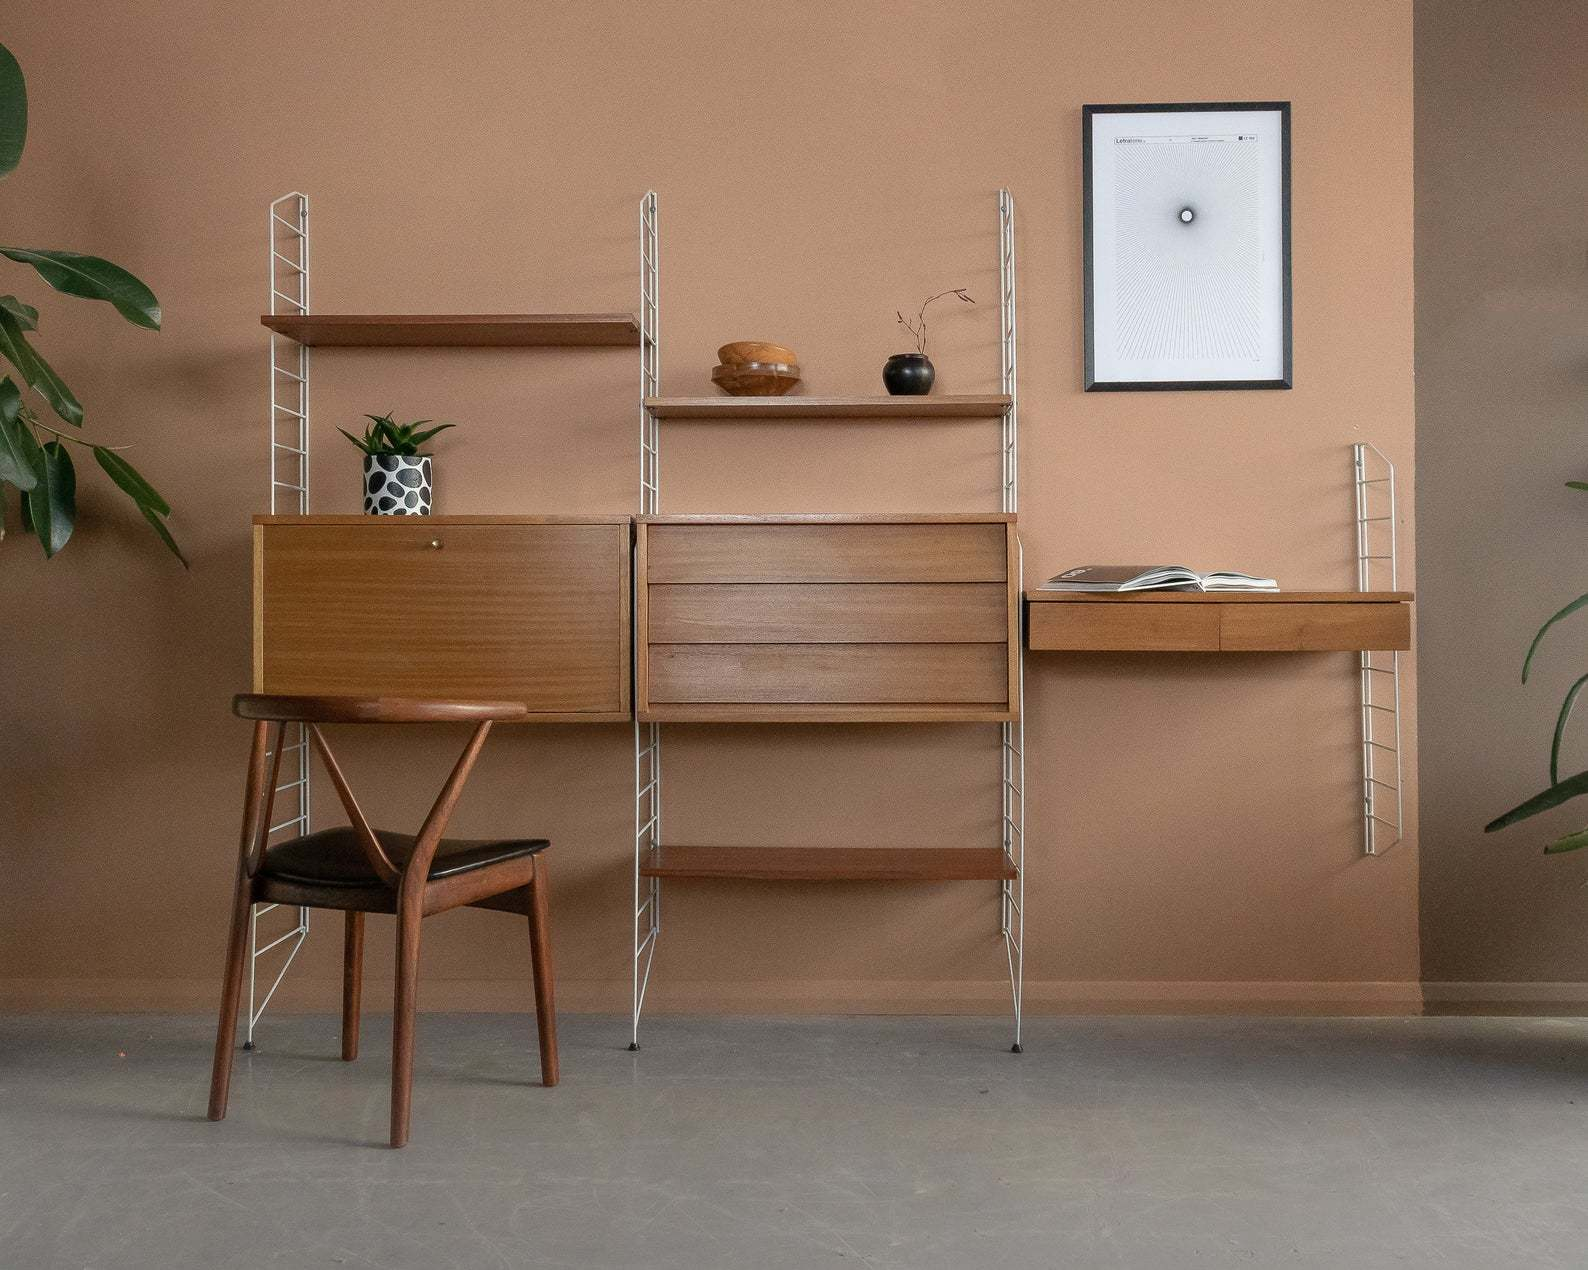 this is a mid century modern wall system by Nils Nisse